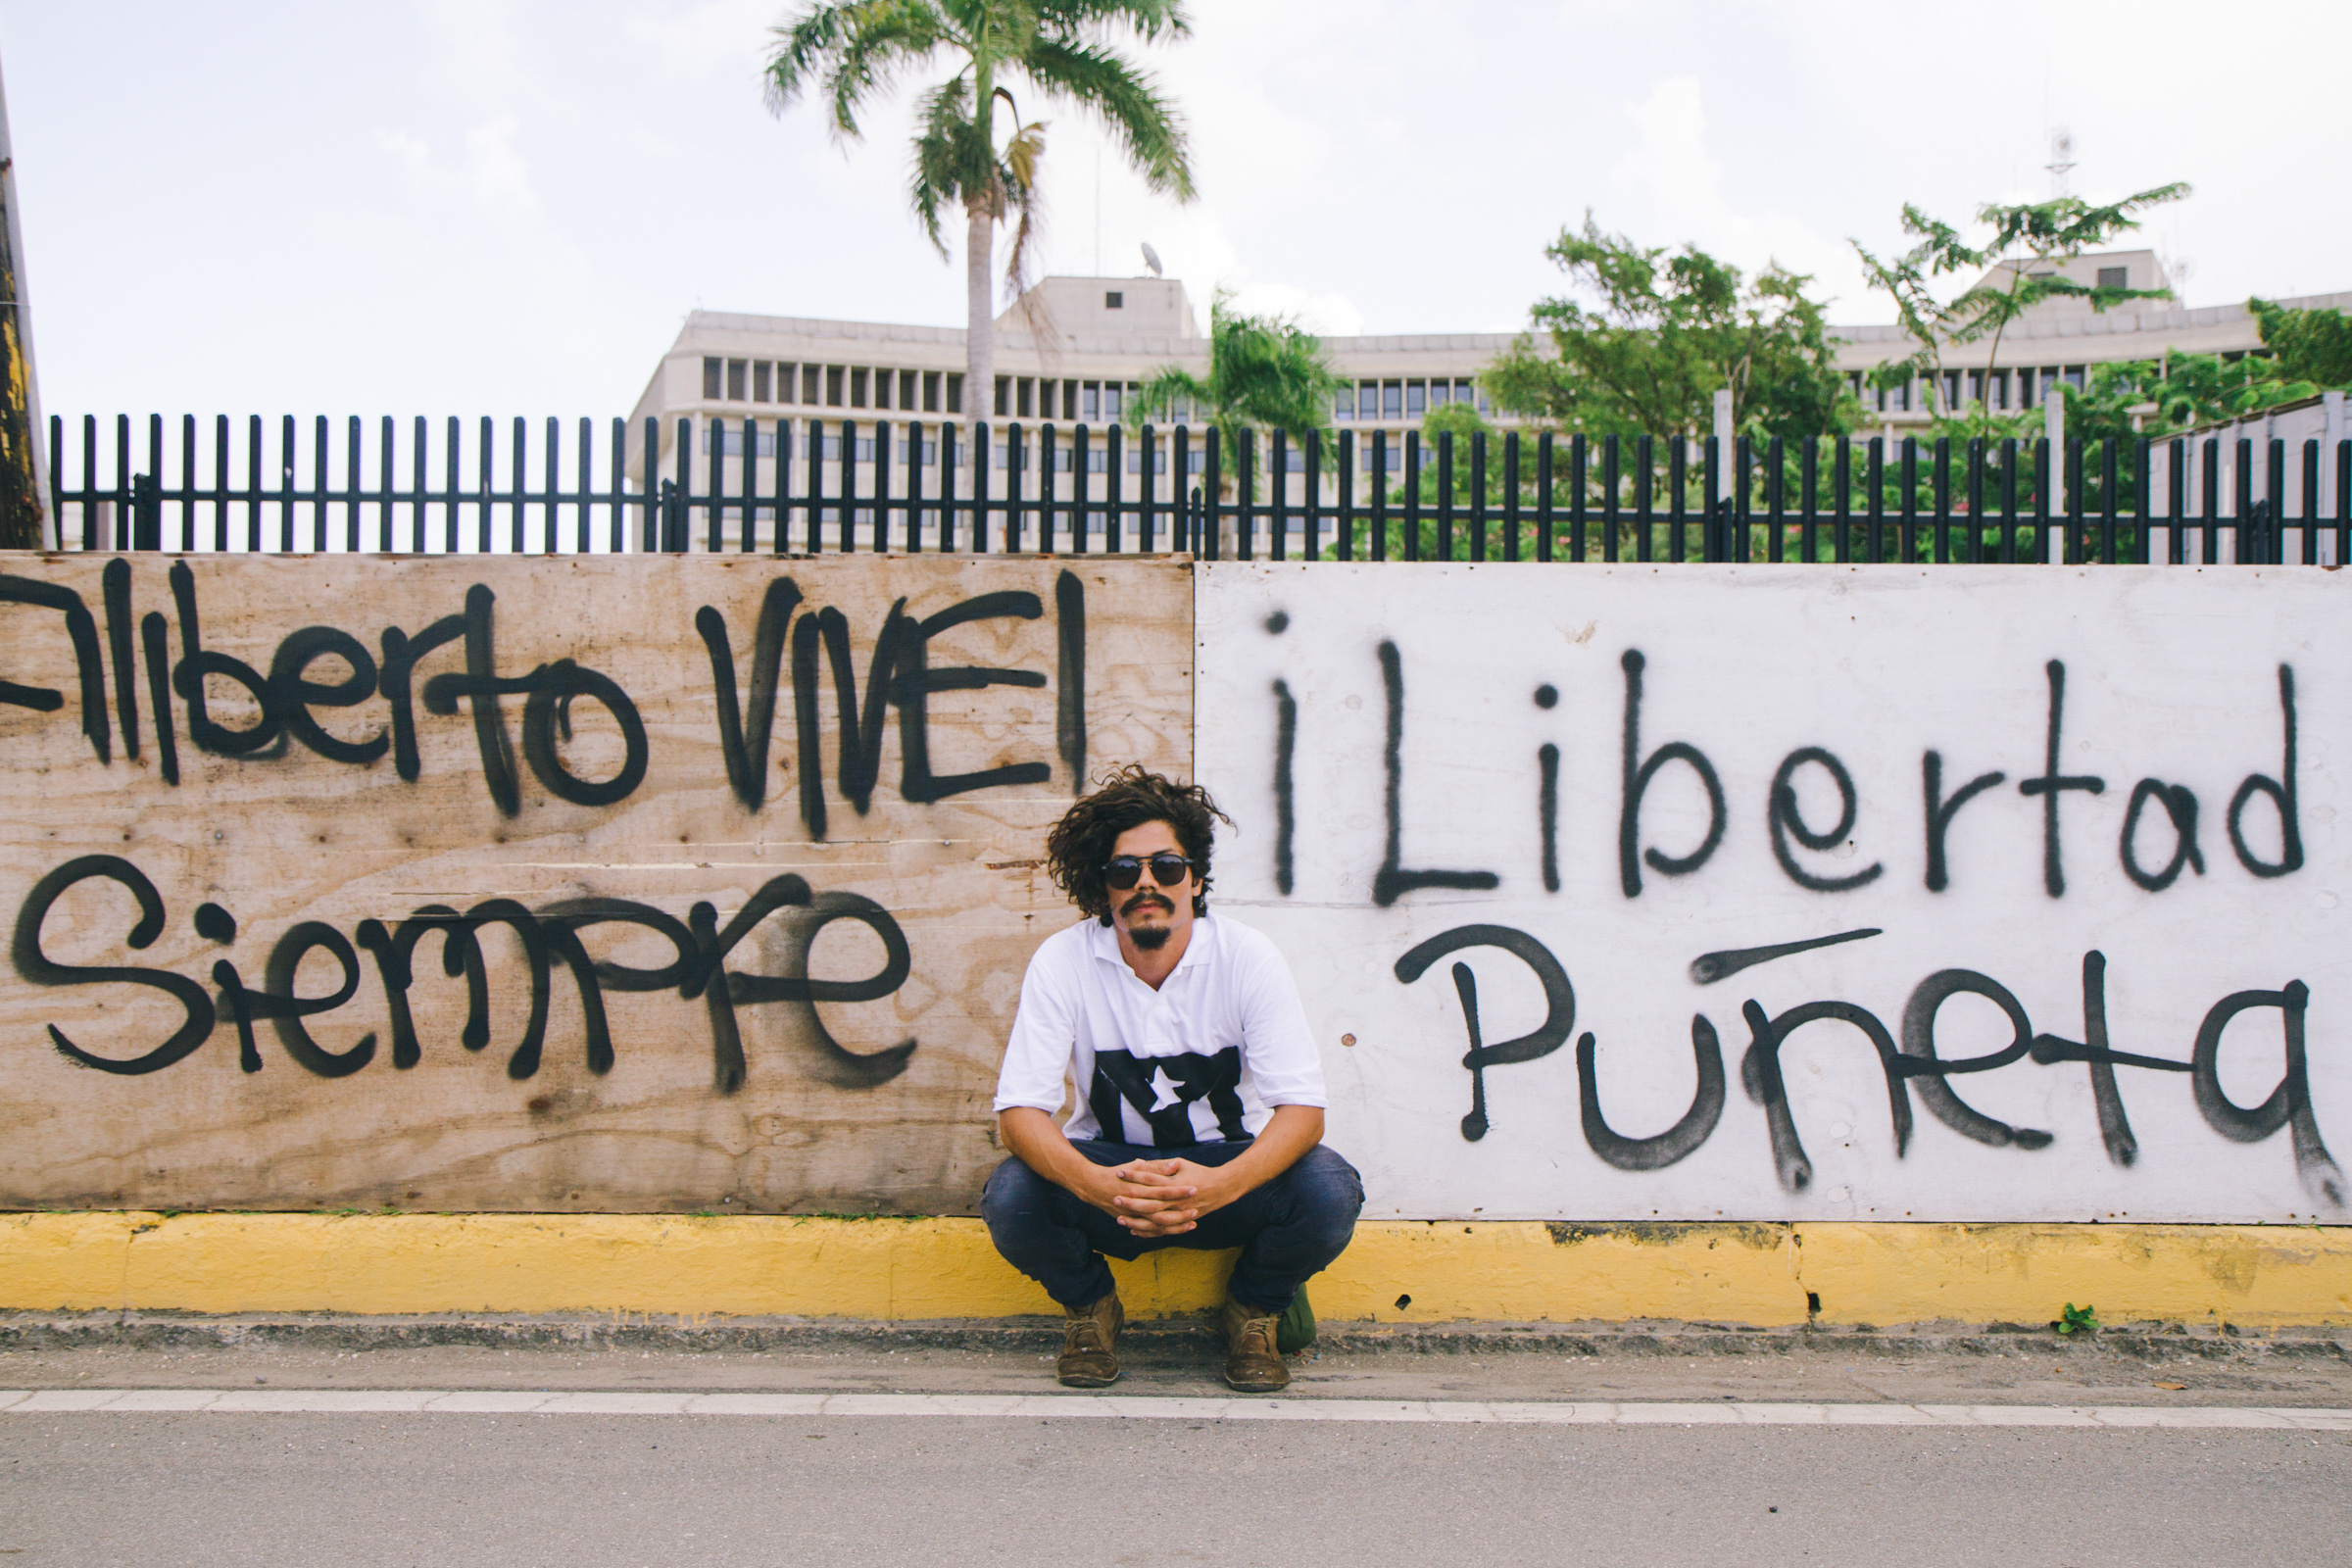 Young Boricuas Have Been Camped Out For a Month Protesting PROMESA. Meet the Faces Behind the Movement.